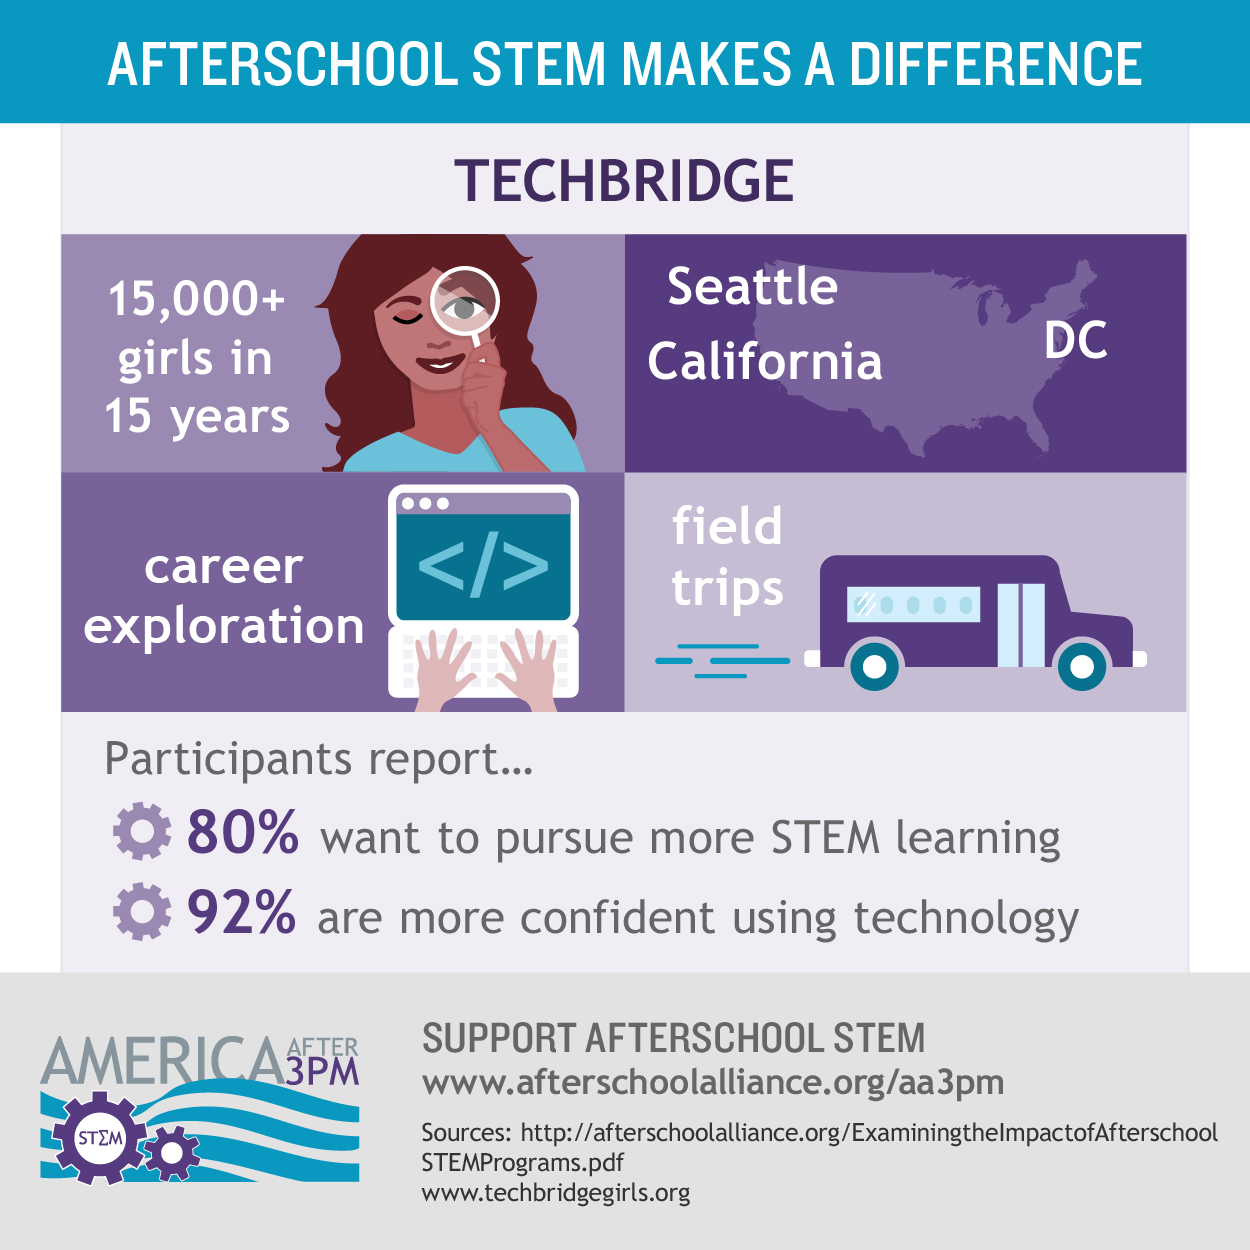 Stem Education Impacting The Achievement Gap And Economy: America After 3PM